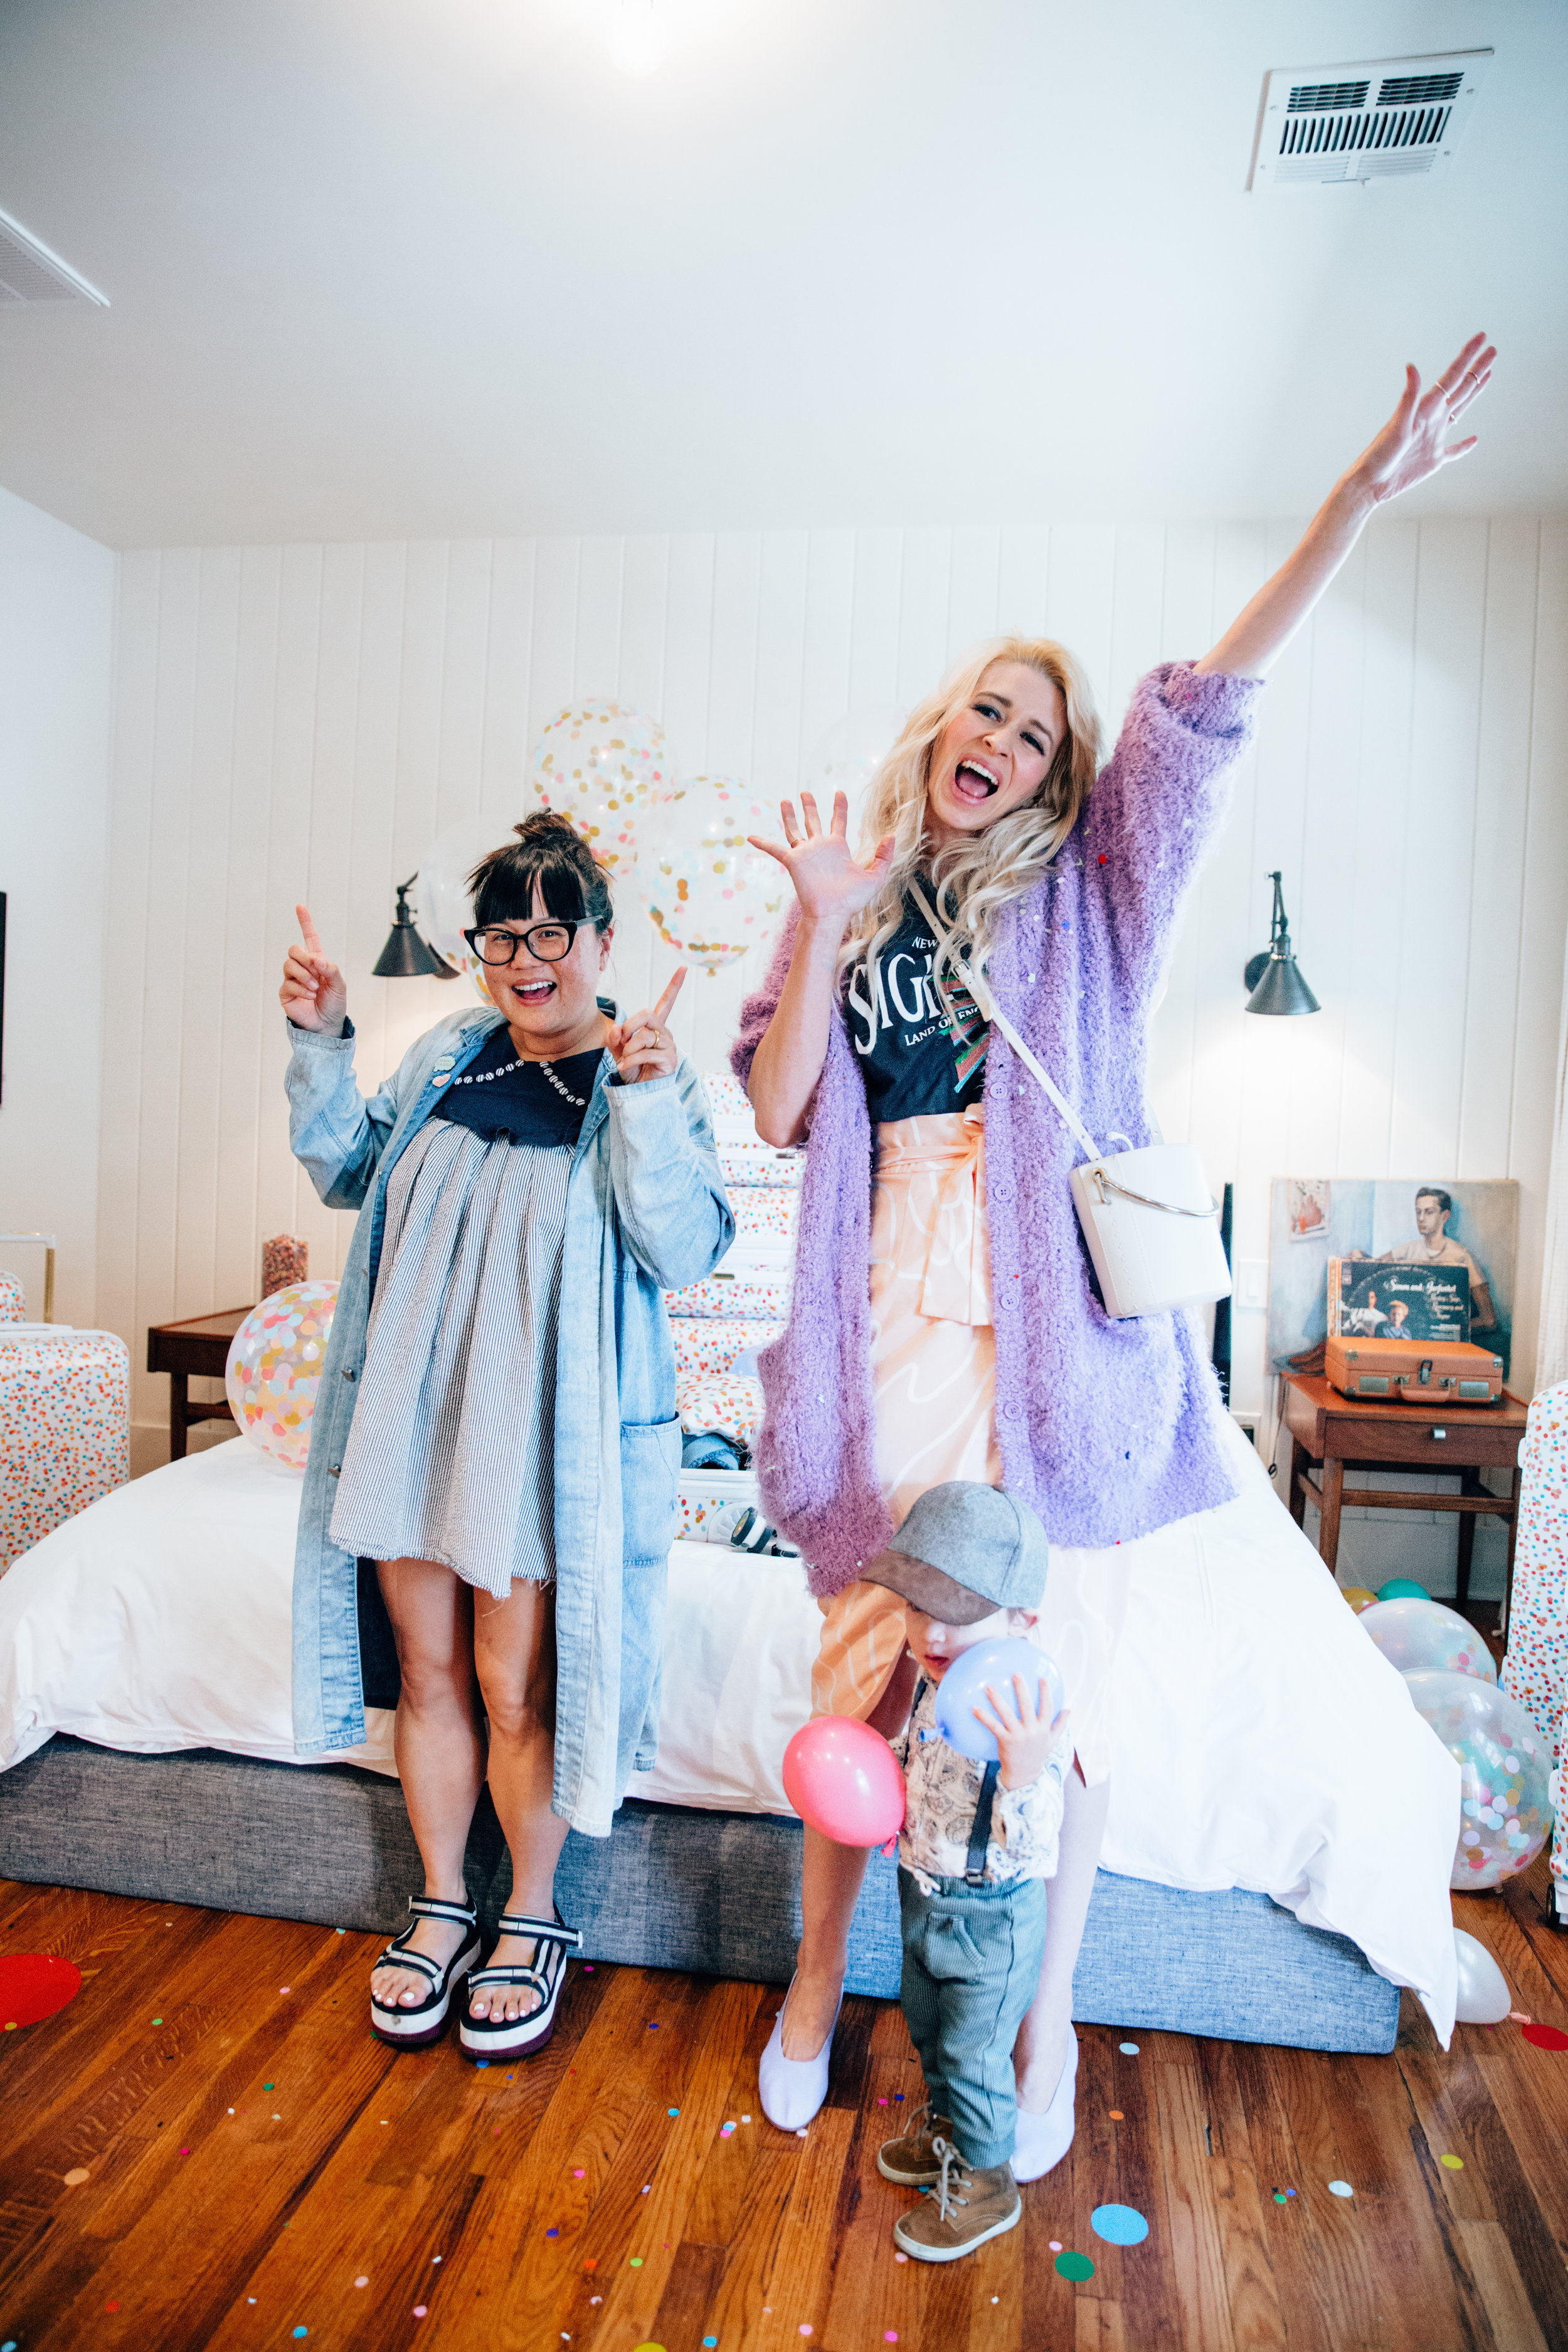 Dance break with Mai from  @maisassygirl and Coury from  @fancytreehouse !